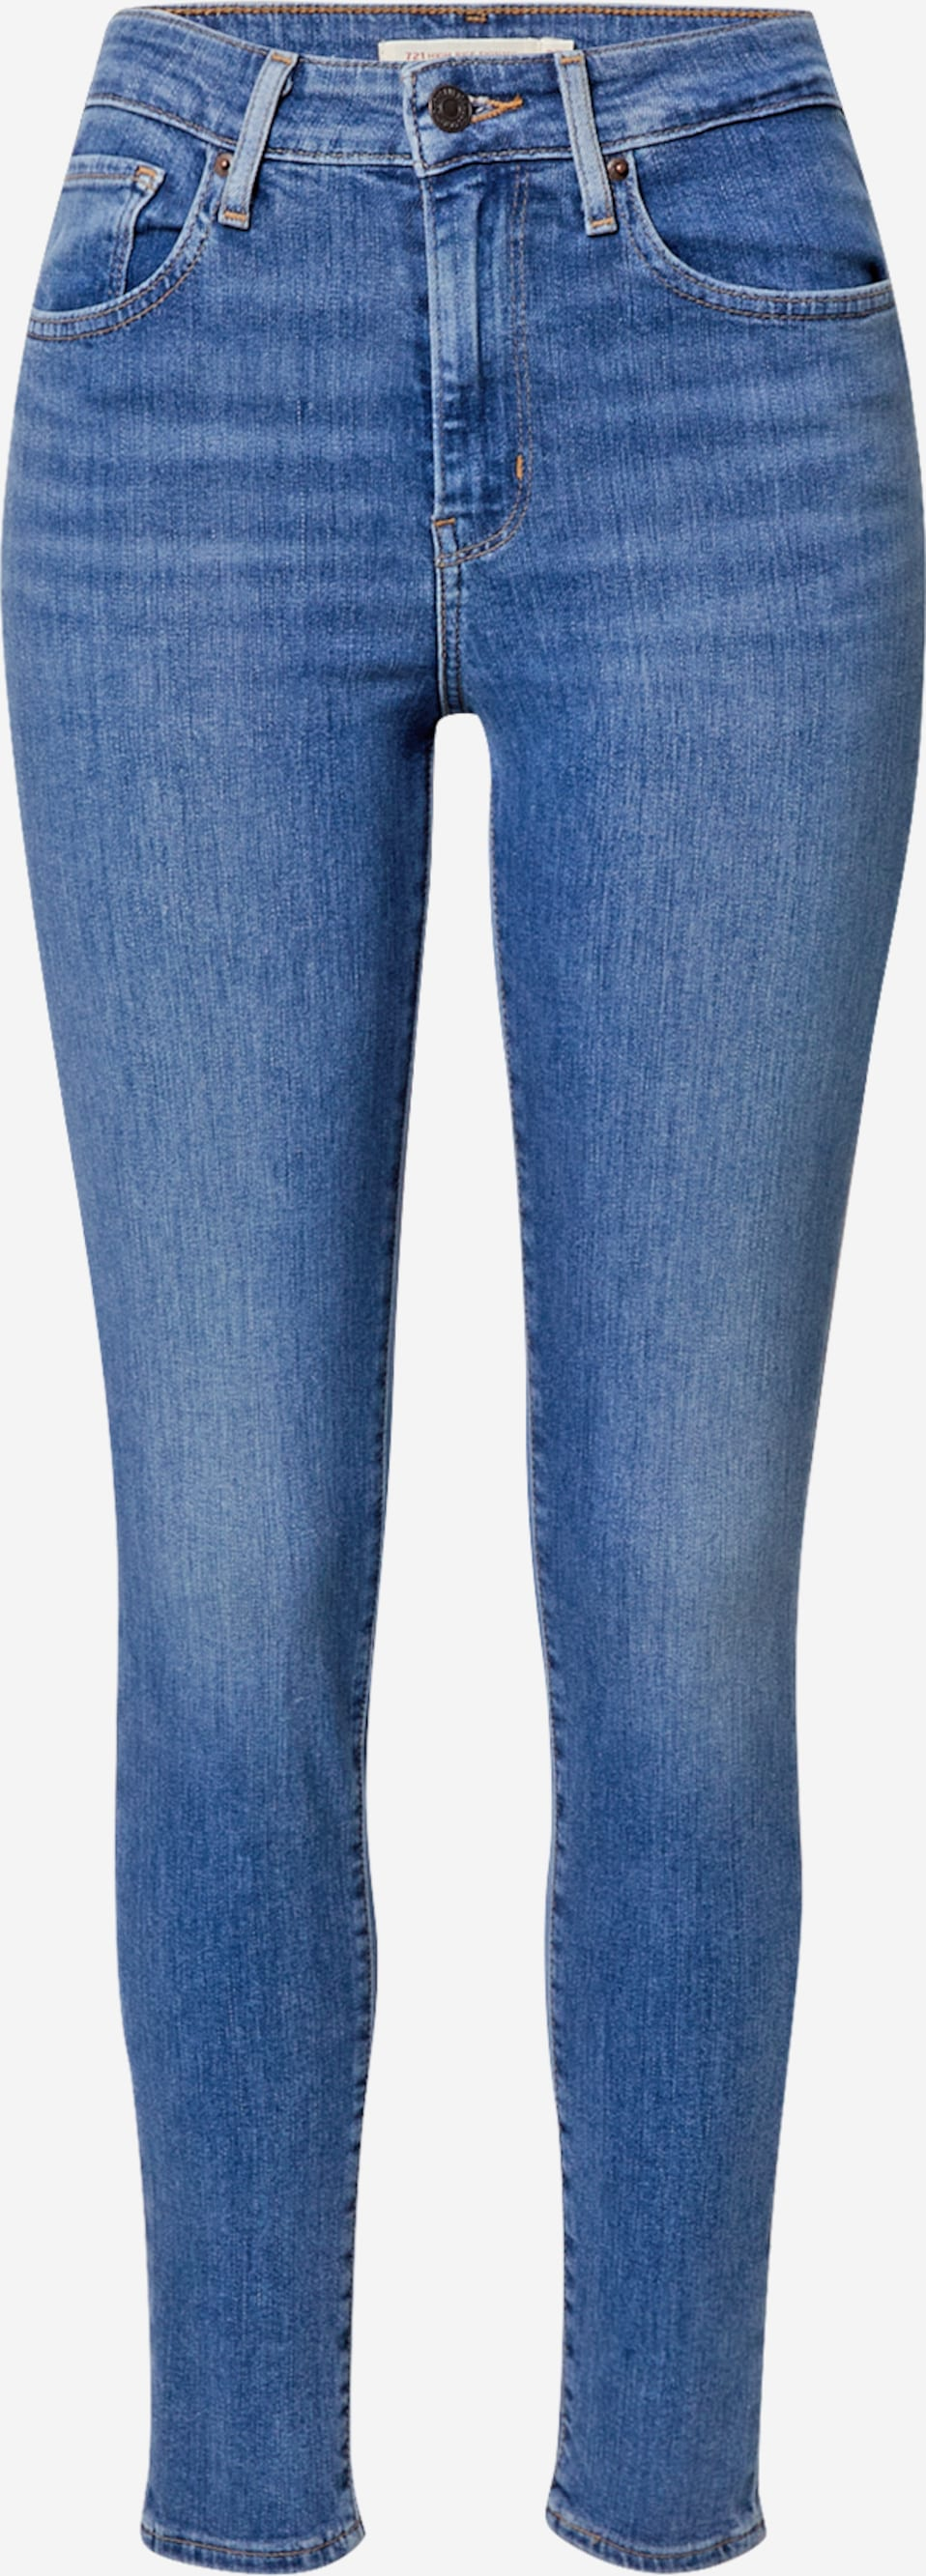 Levi's 721 HIGH RISE SKINNY GOOD AFTE